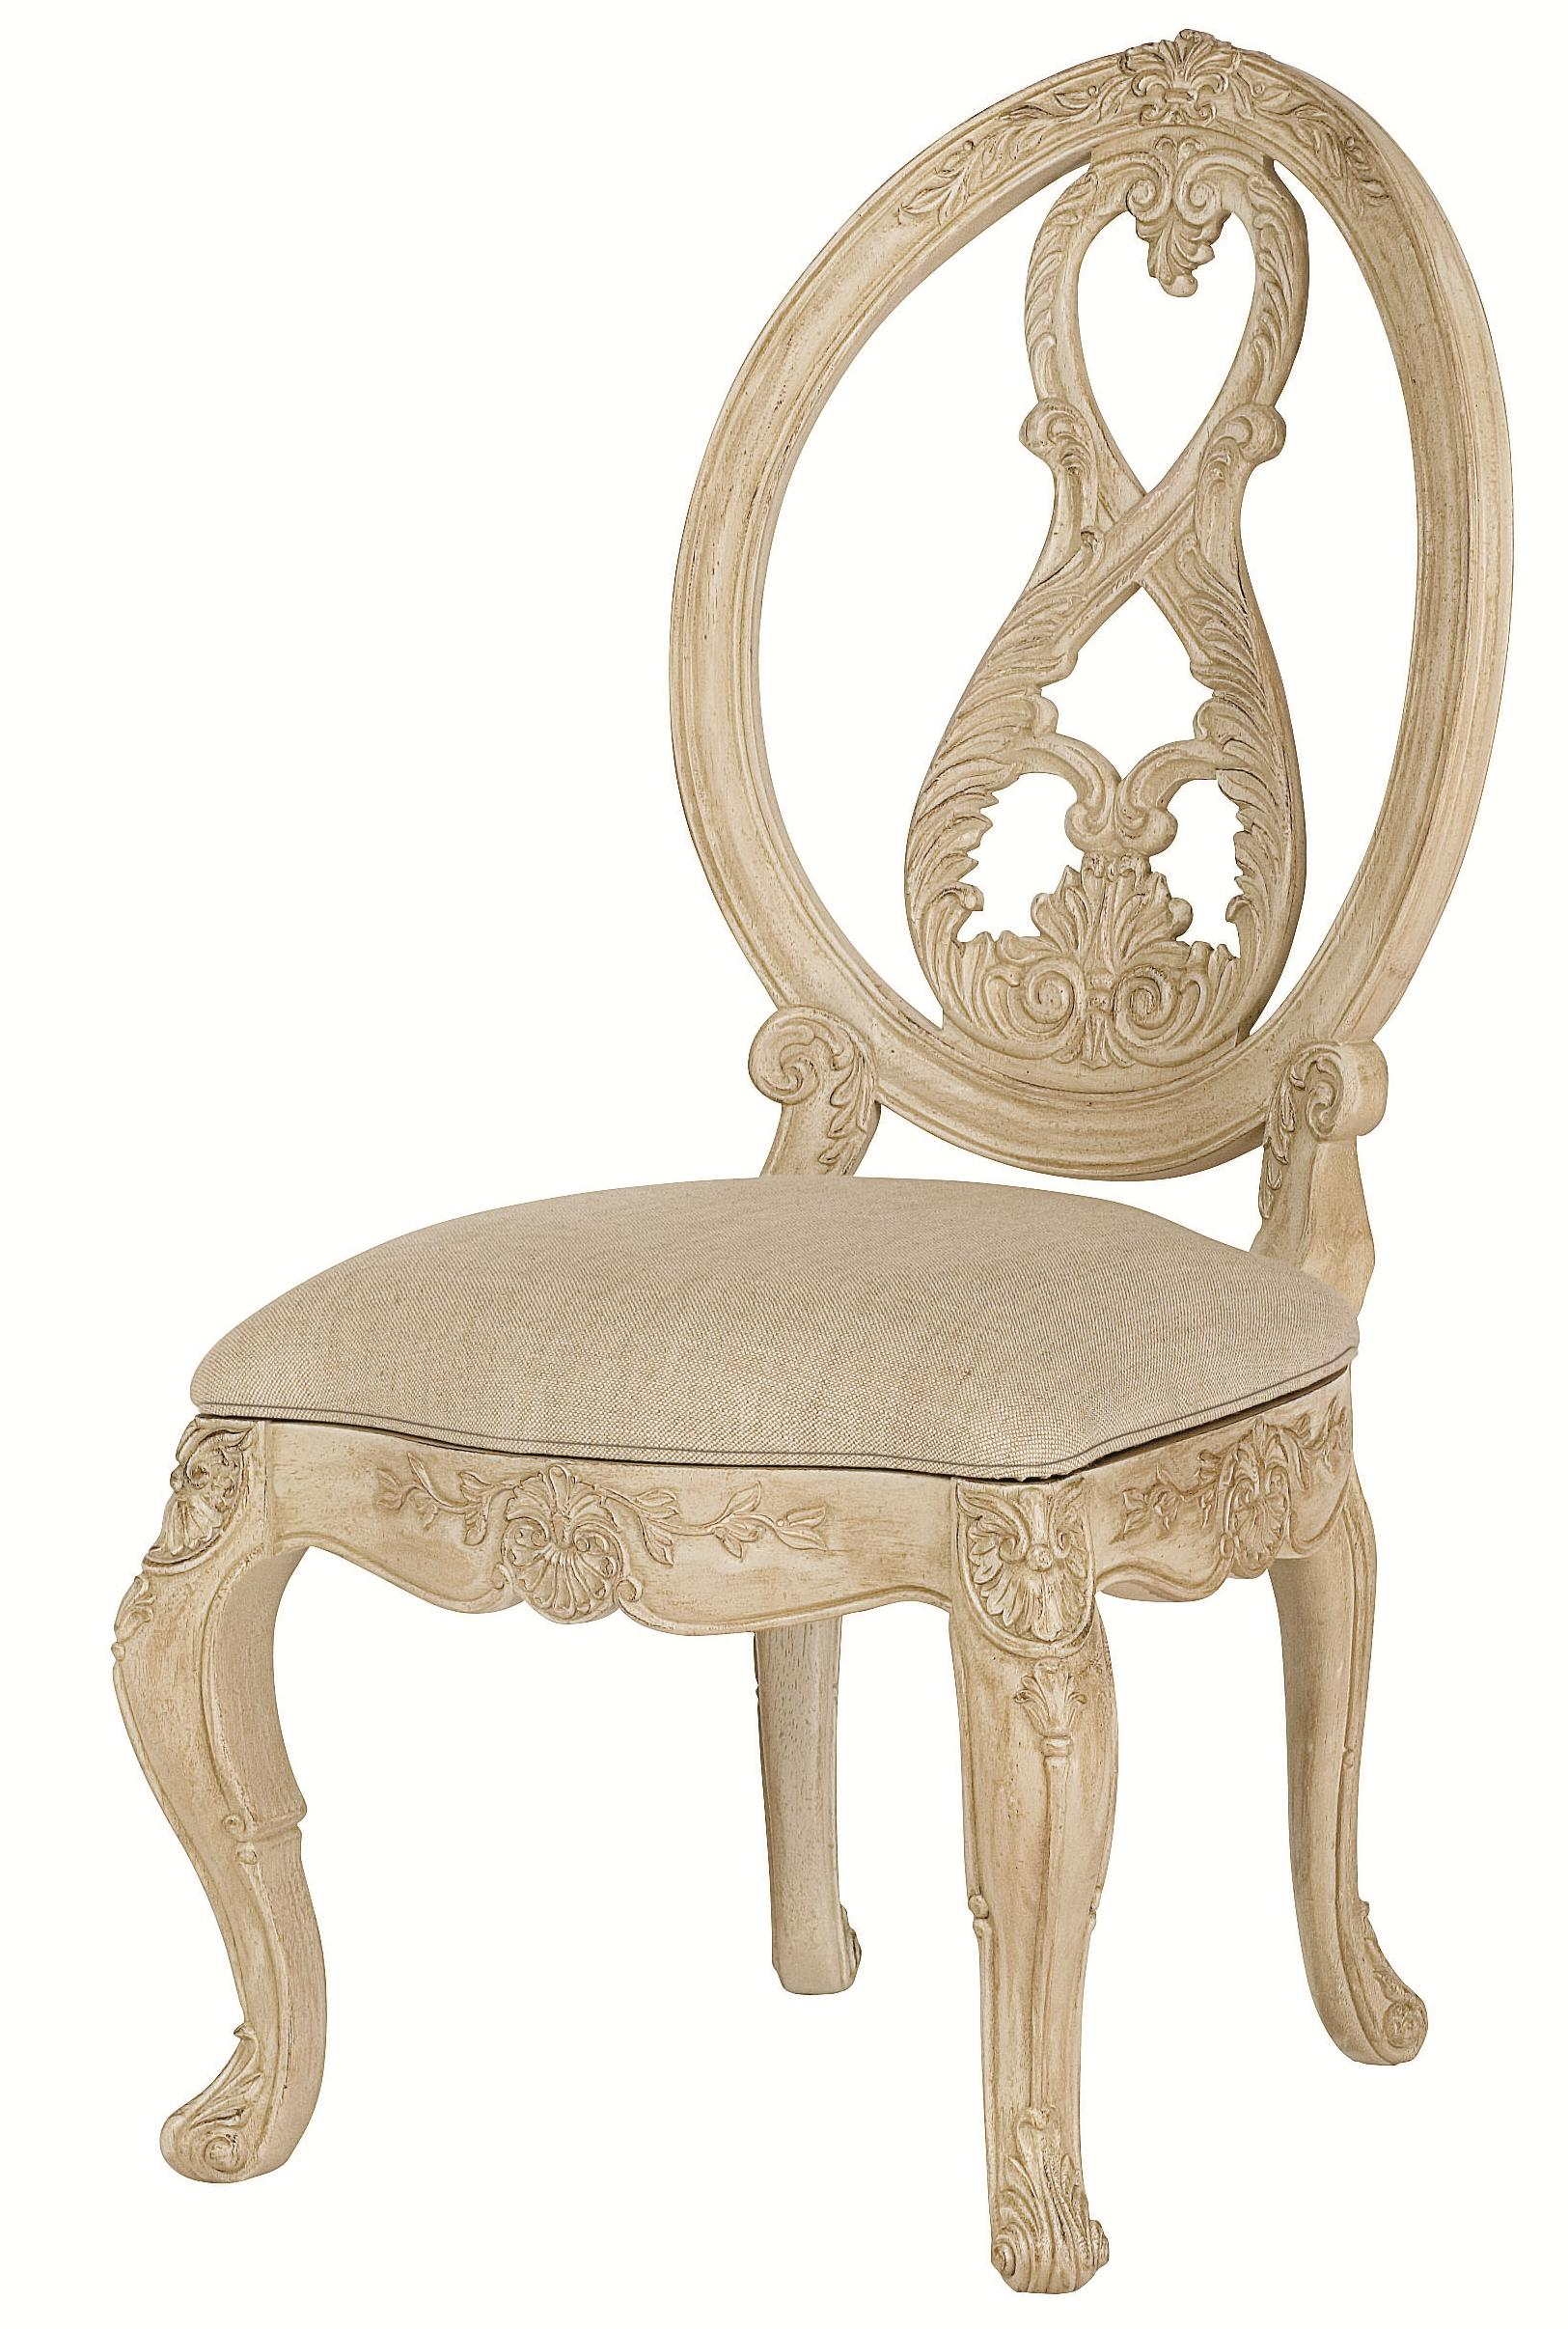 American Drew Jessica McClintock Home - The Boutique Collection Splat Back Side Chair - Item Number: 217-622W